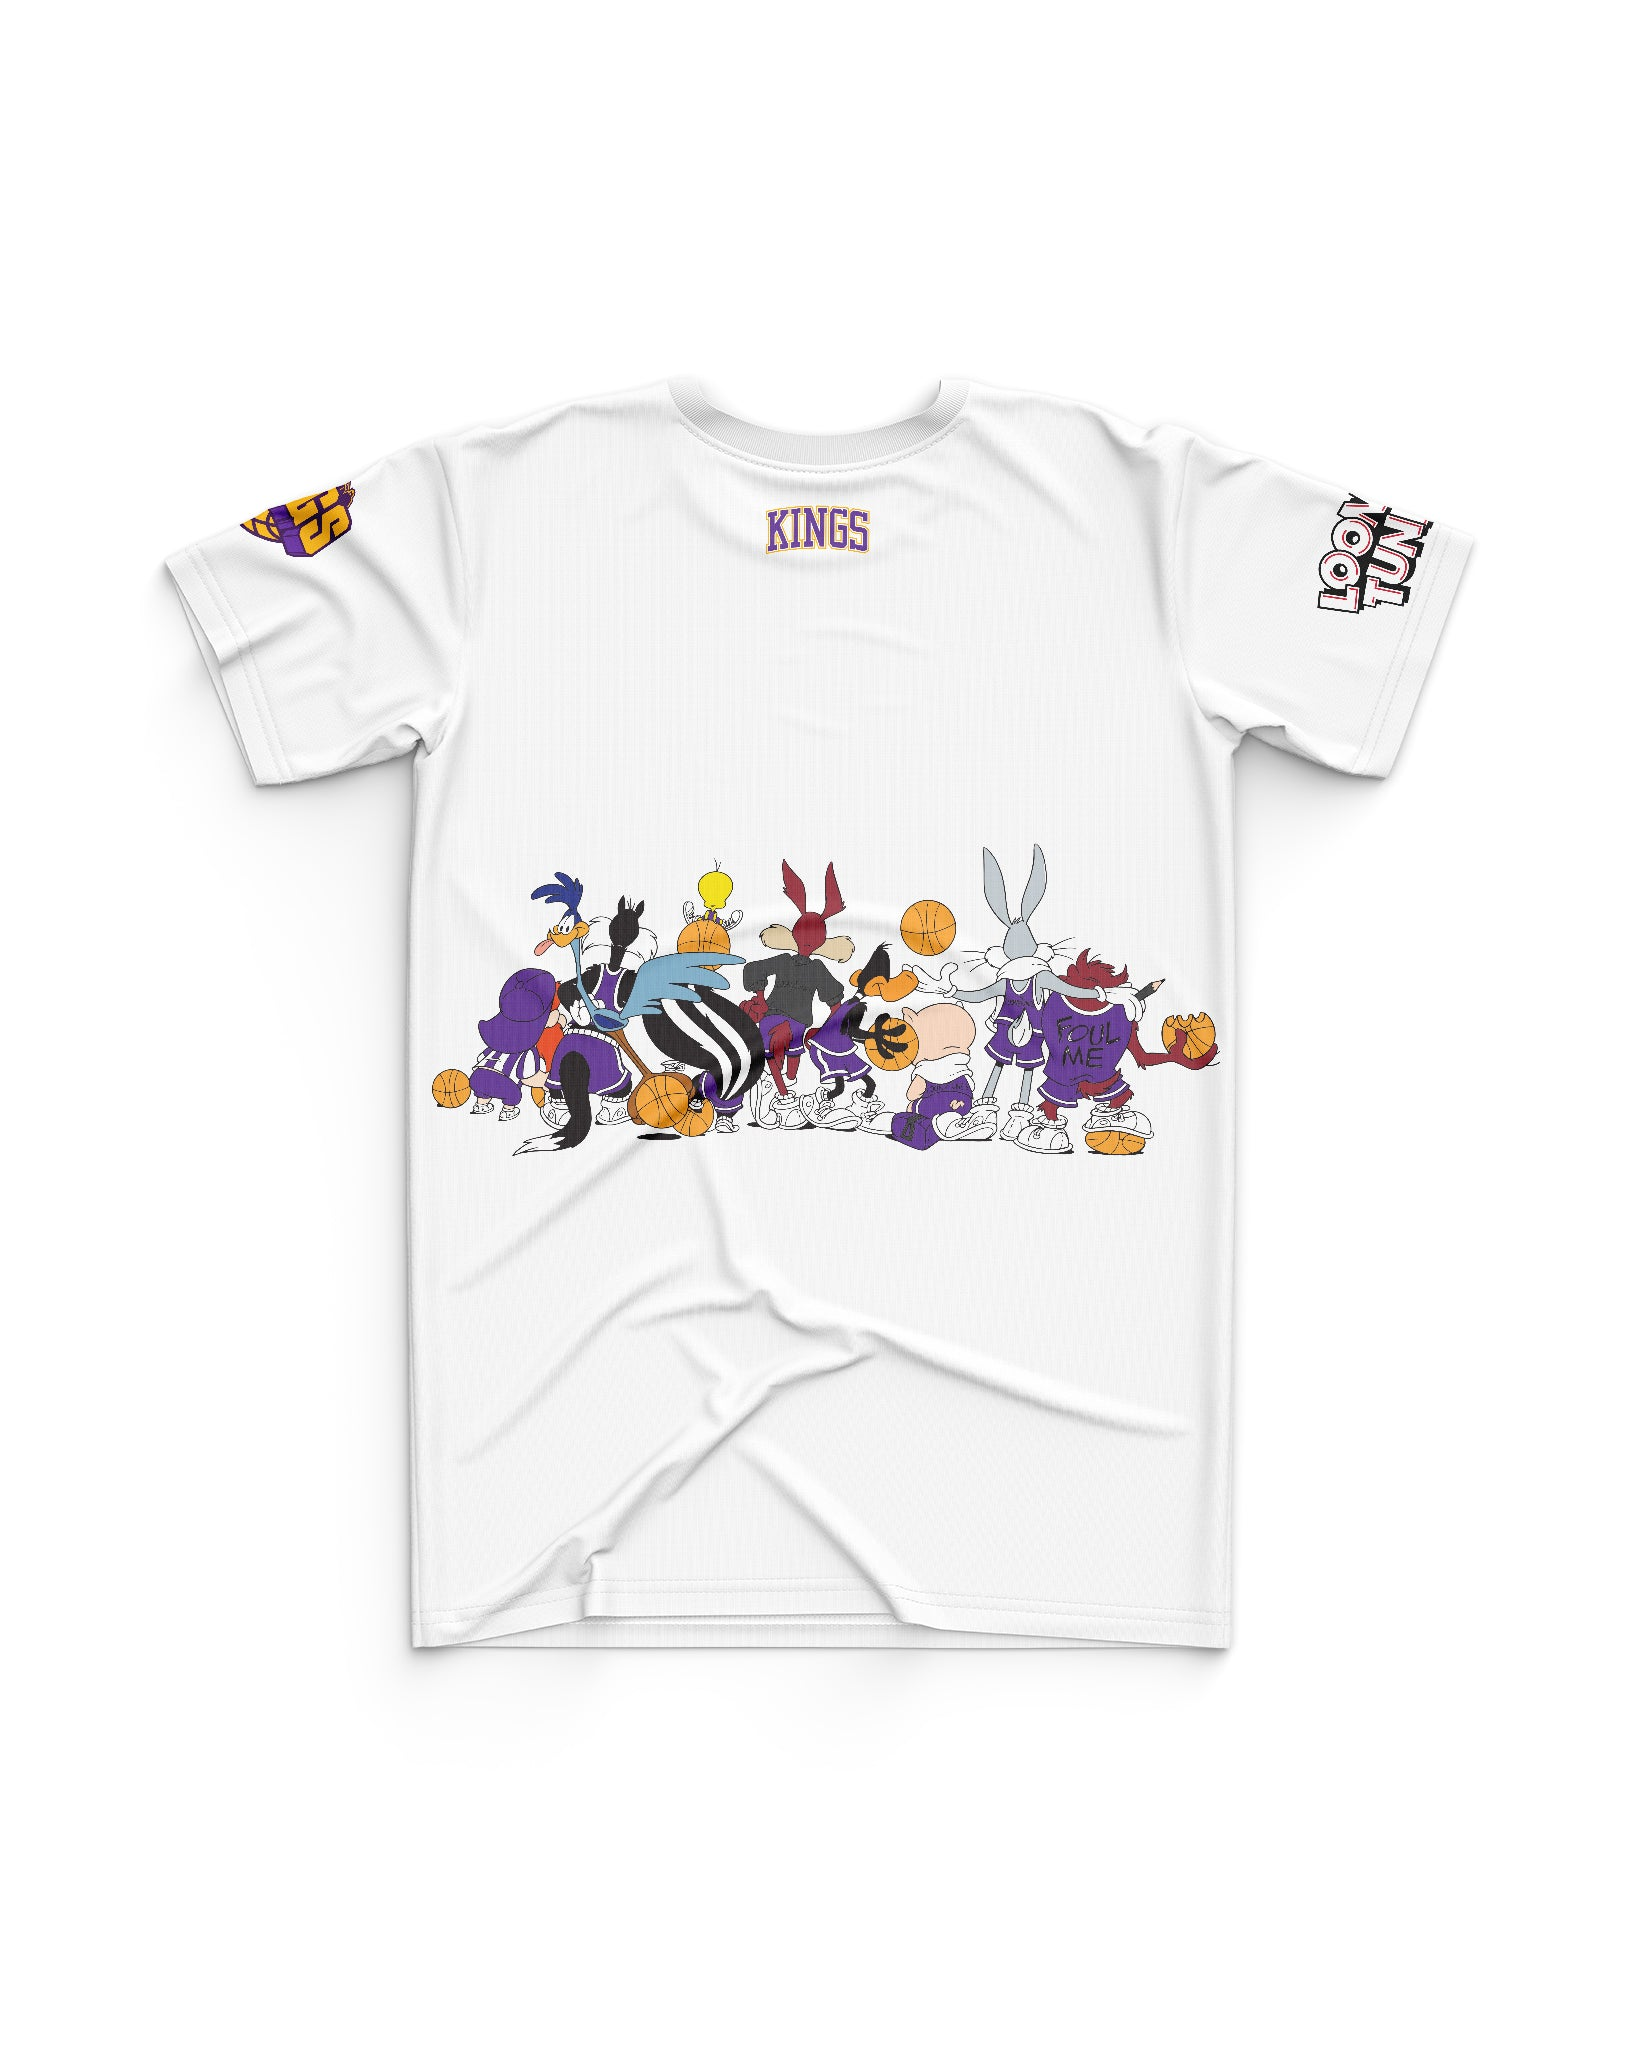 Sydney Kings 20/21 Looney Tunes Youth Squad Tee